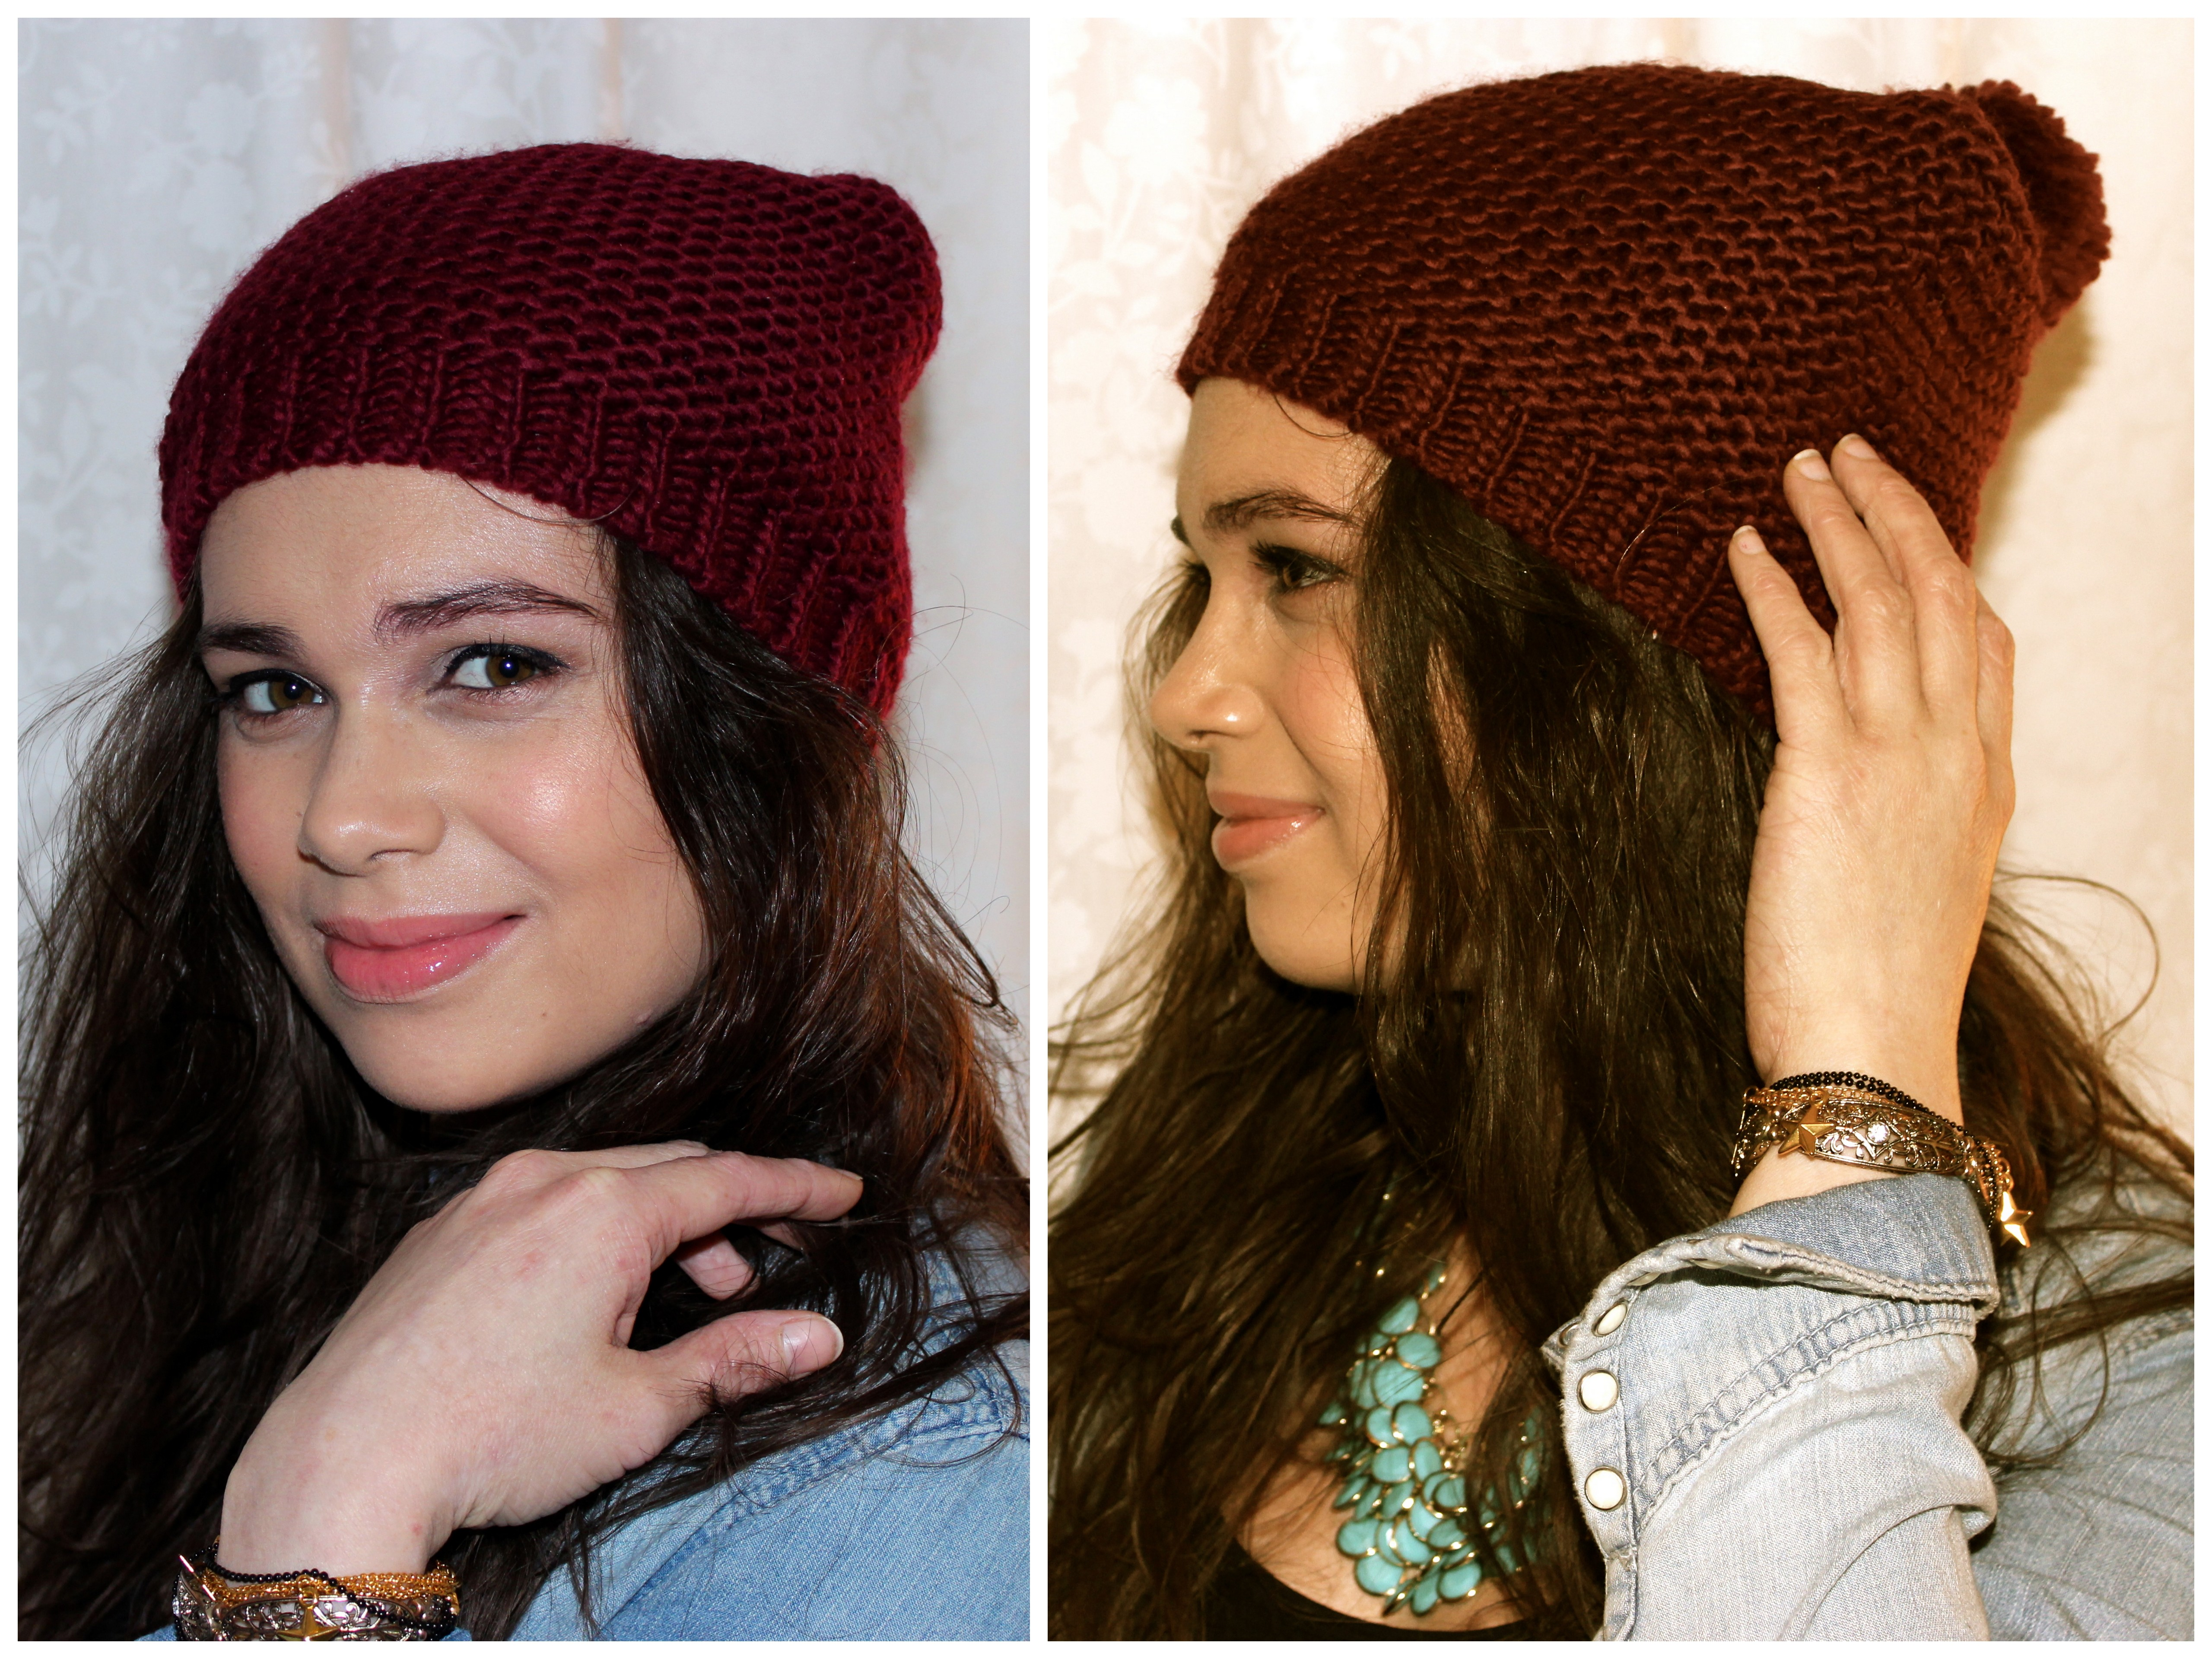 My favorite beanies